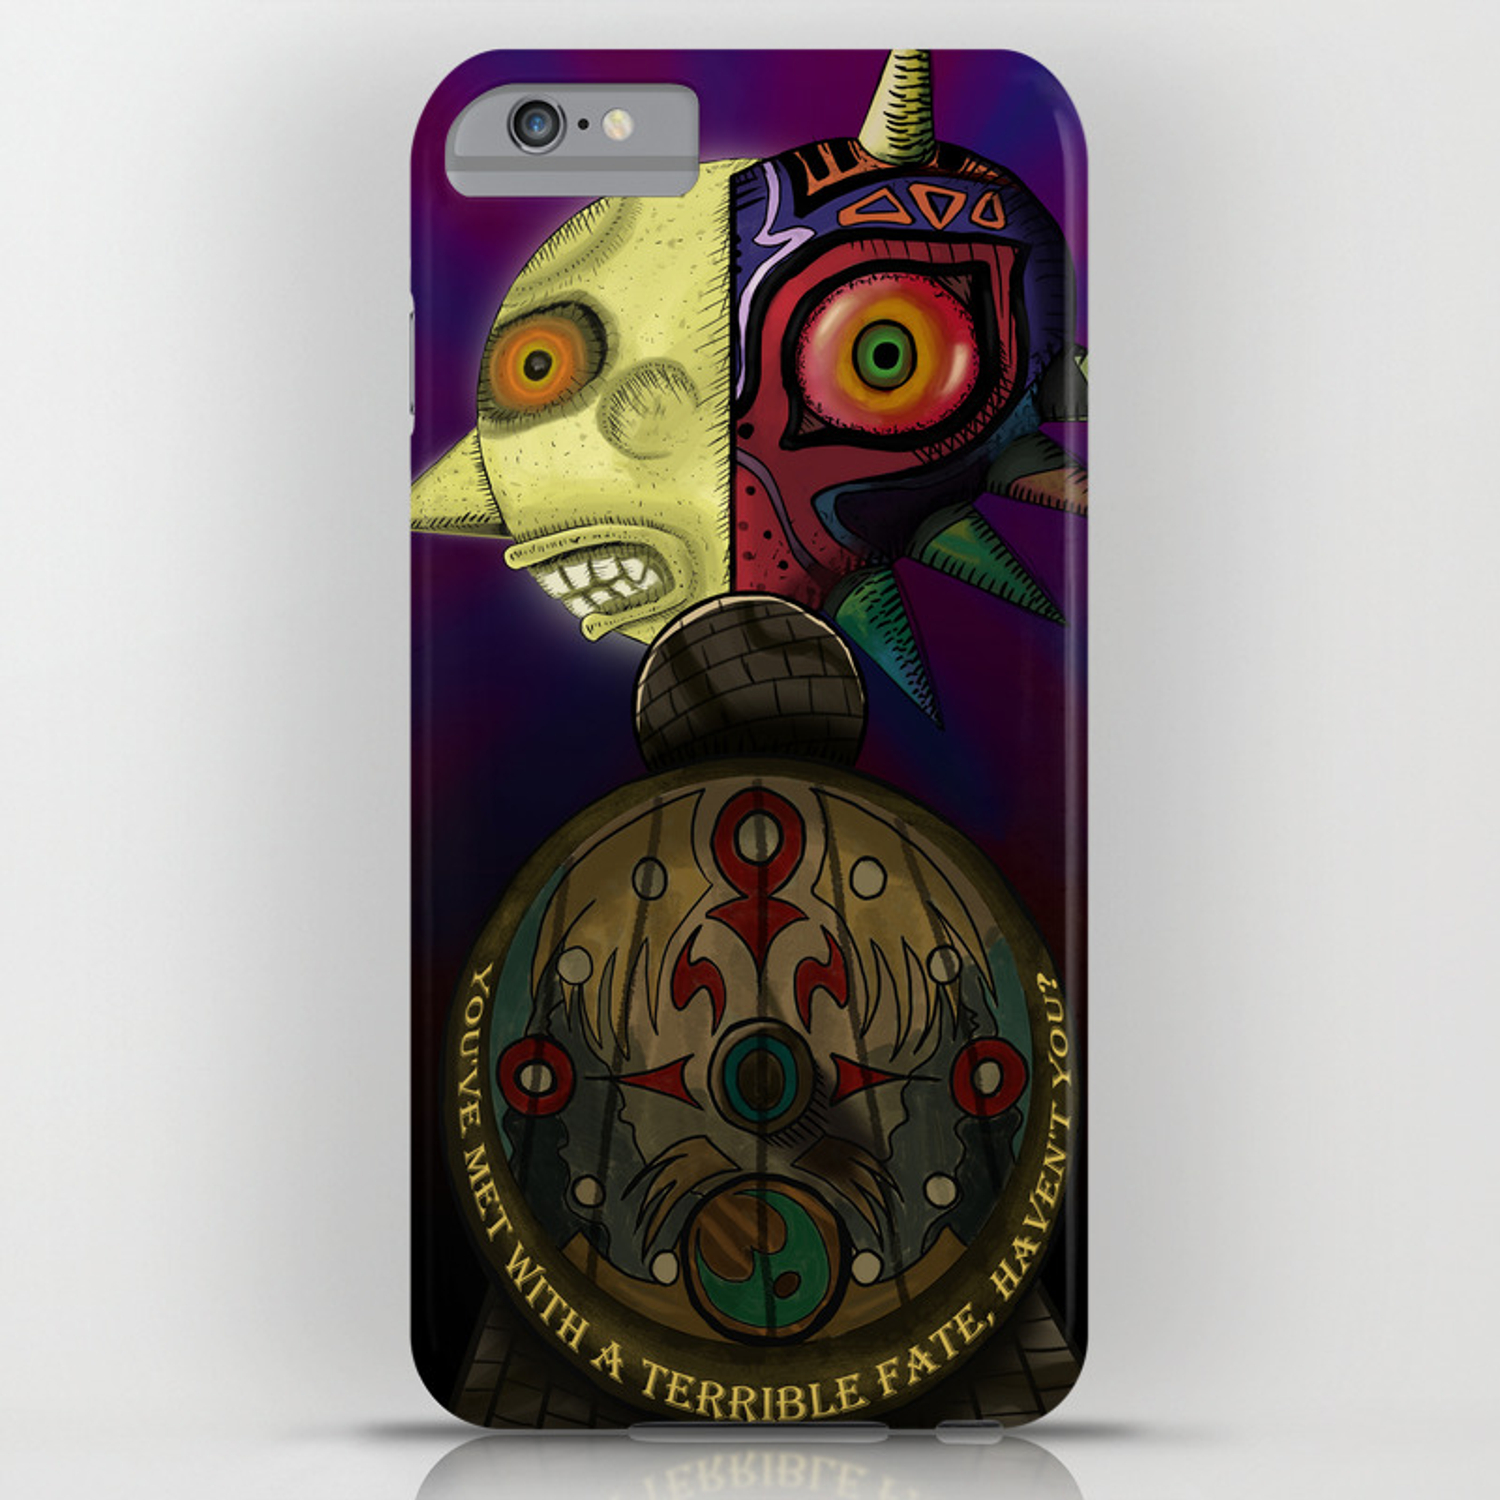 Terrible Fate iphone case